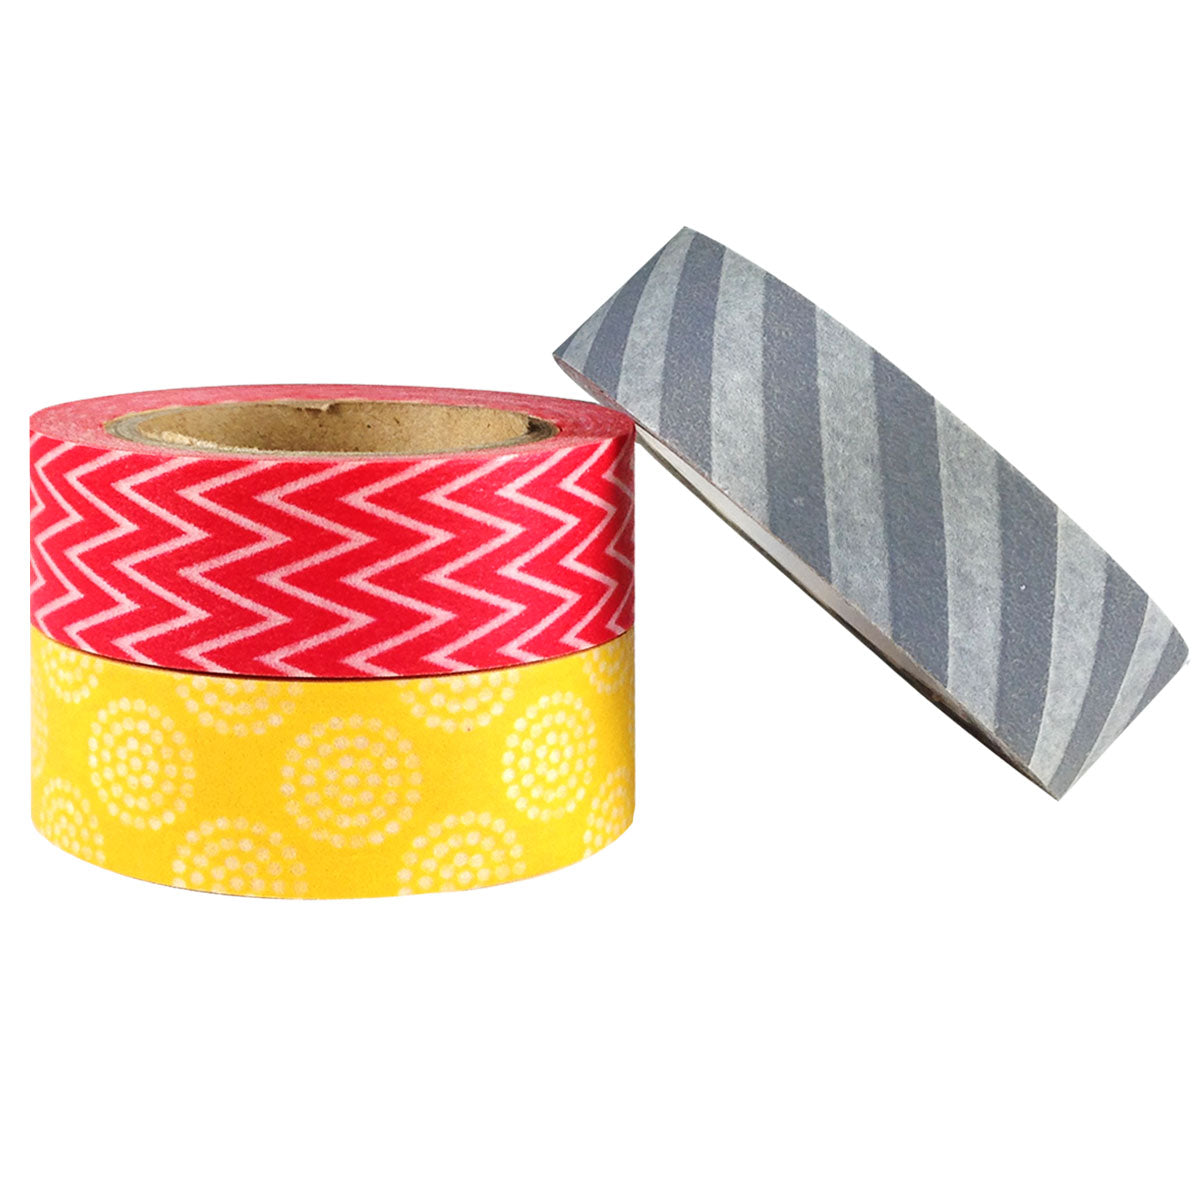 Wrapables Busy Patterns Japanese Washi Masking Tape (Set of 3)